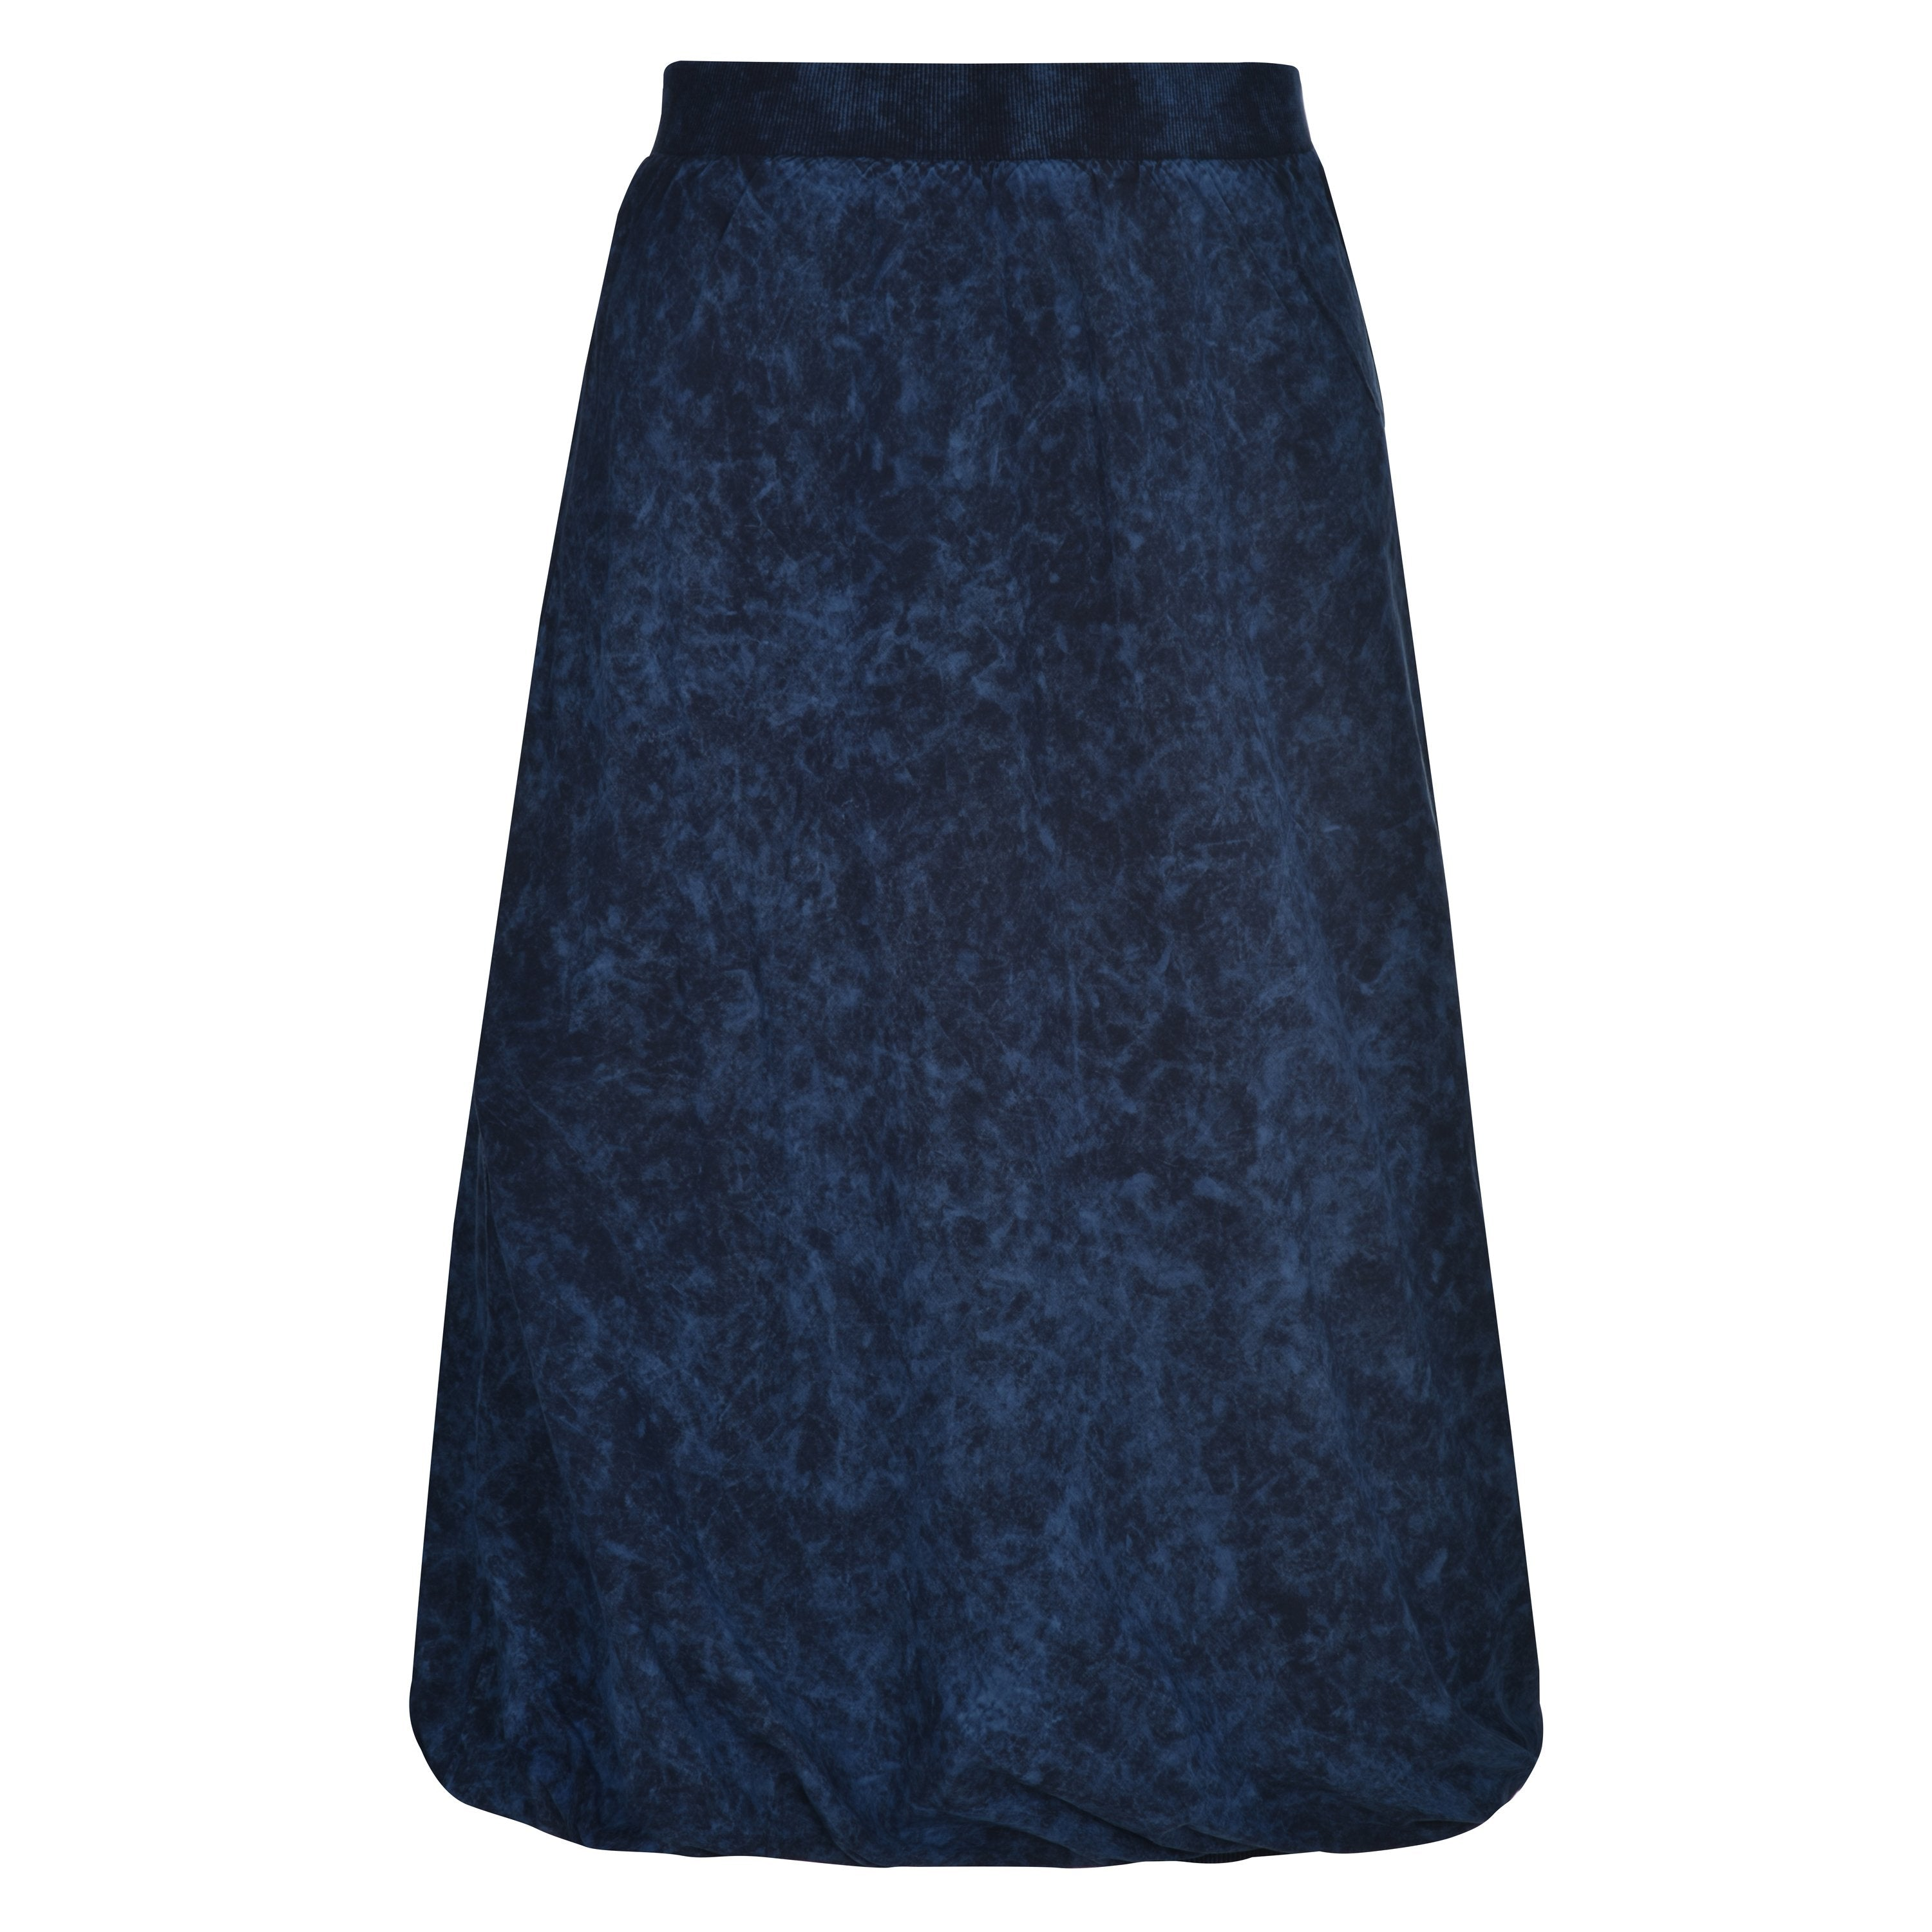 740be2af5c Modest Skirts for Women